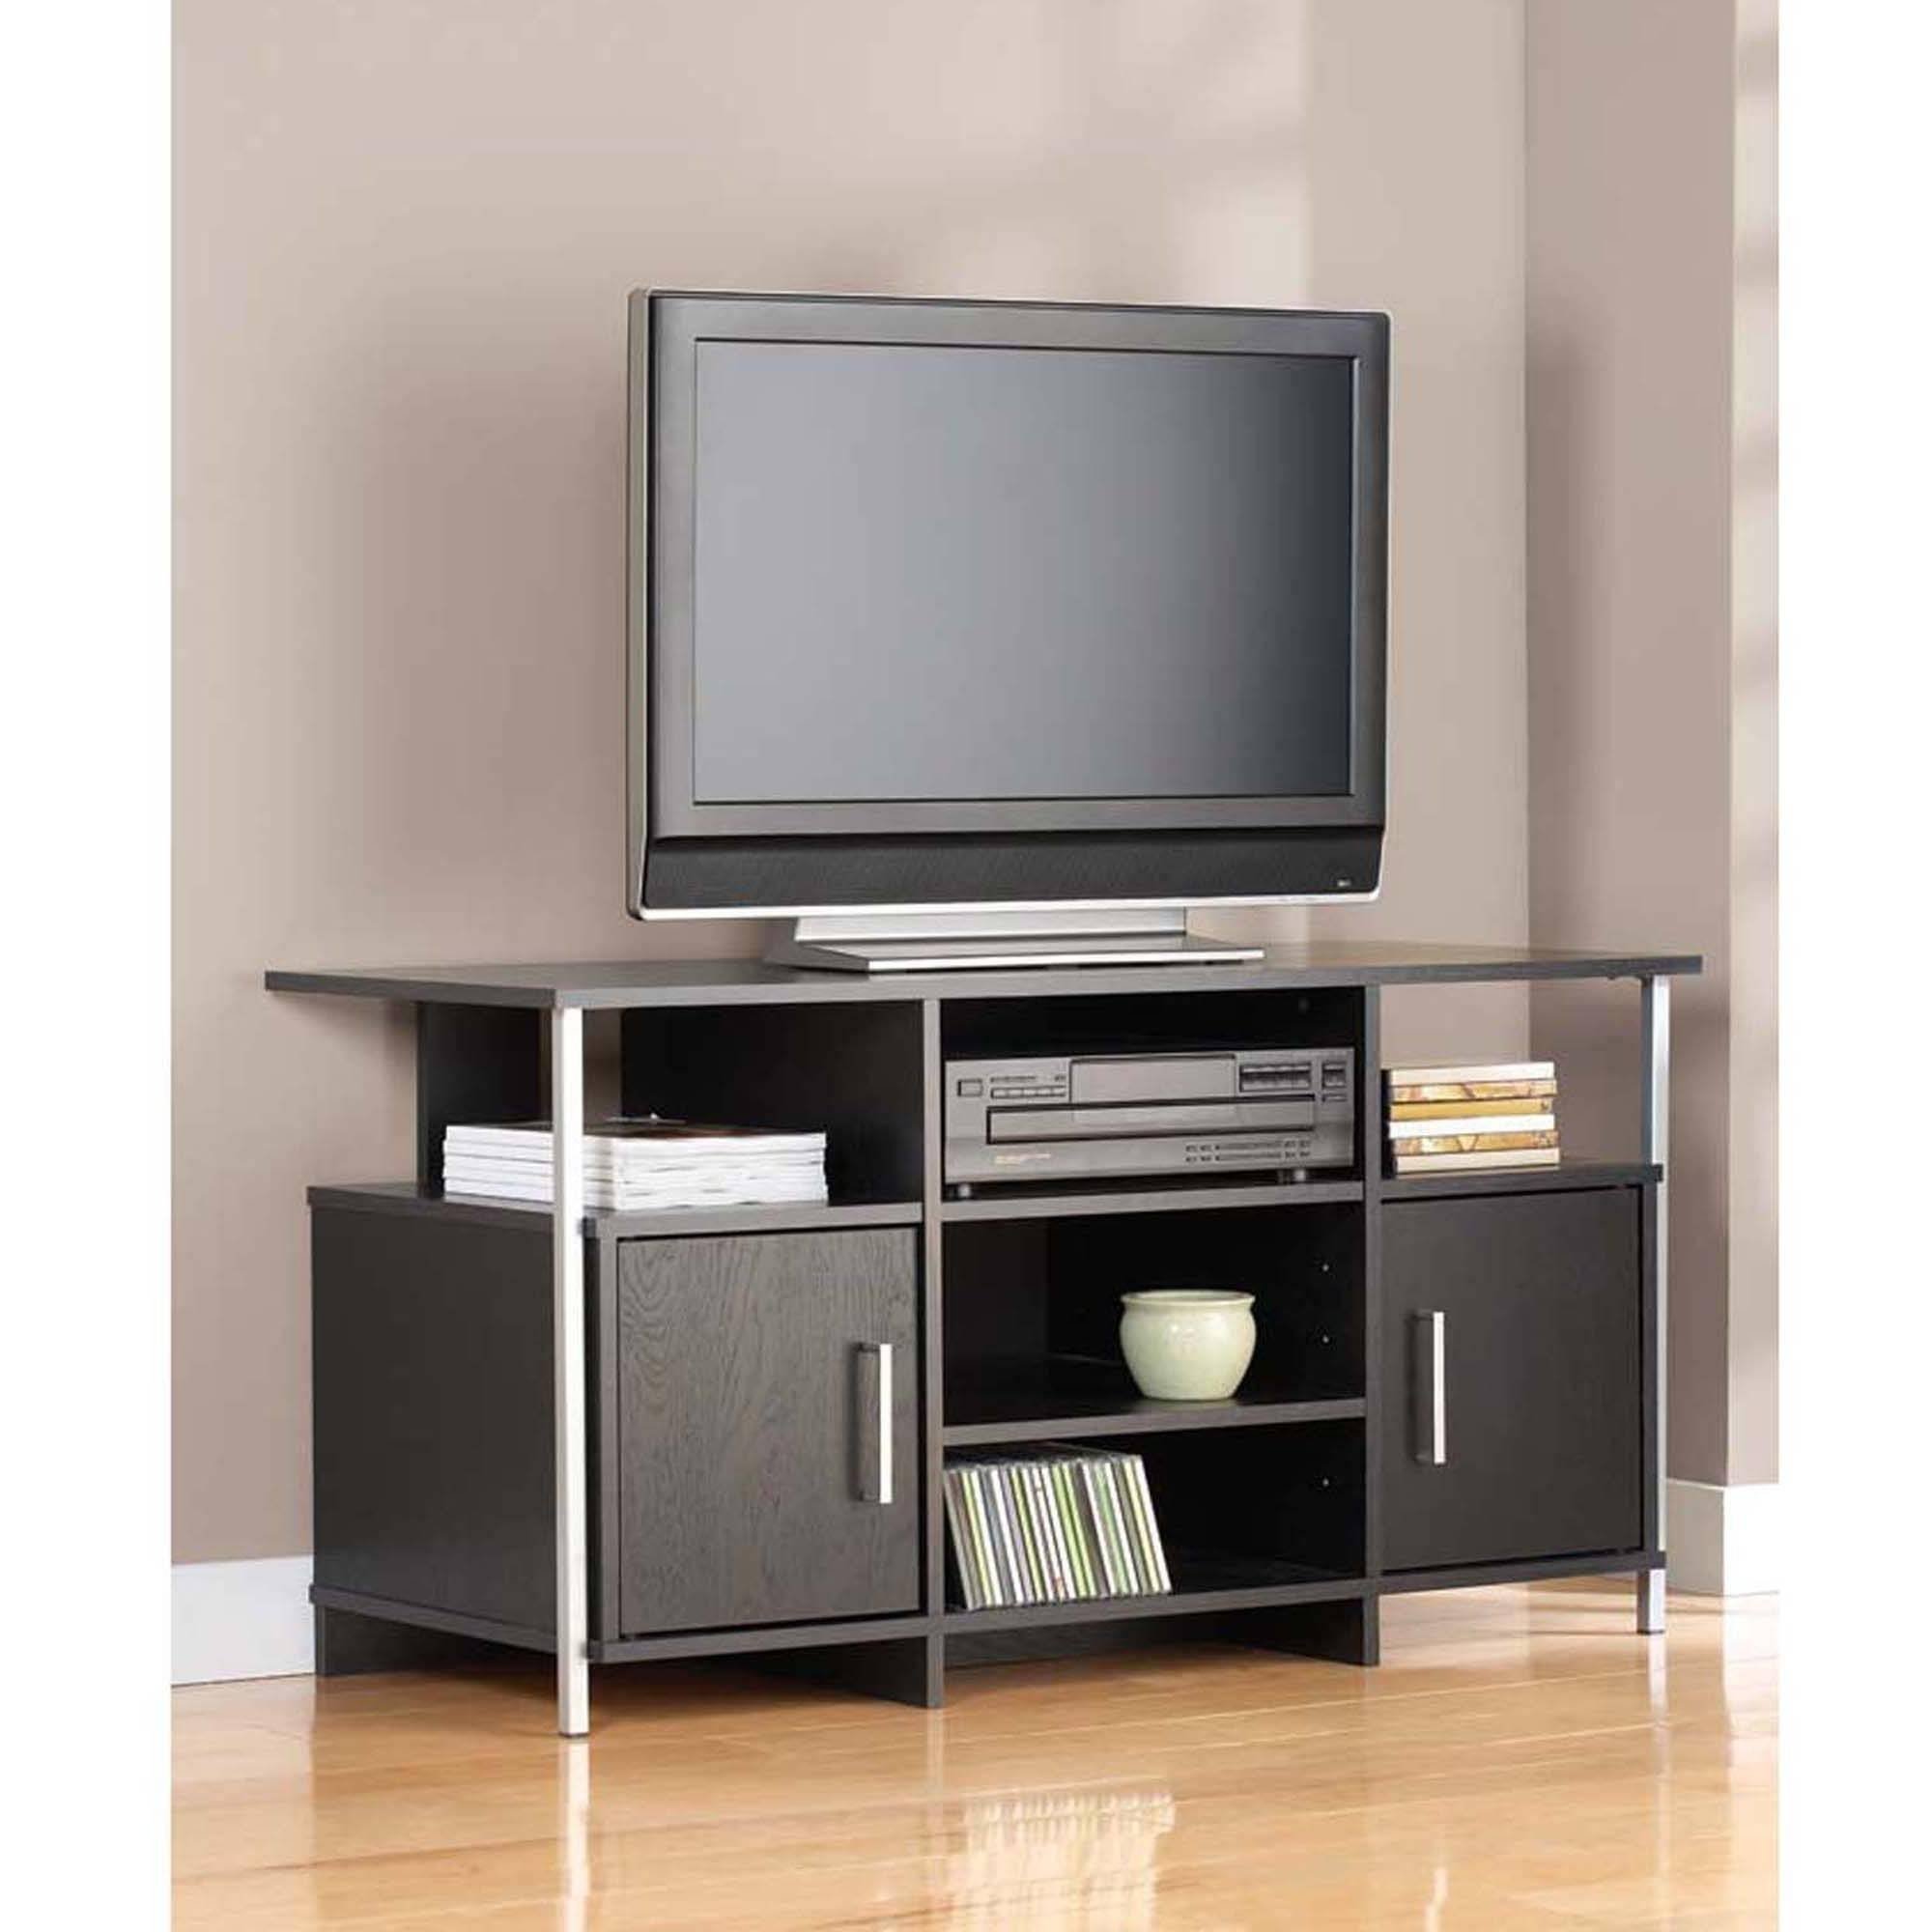 Furniture. Perfect Tv Stands For Flat Screens Design Ideas with Wooden Tv Stands for Flat Screens (Image 6 of 15)